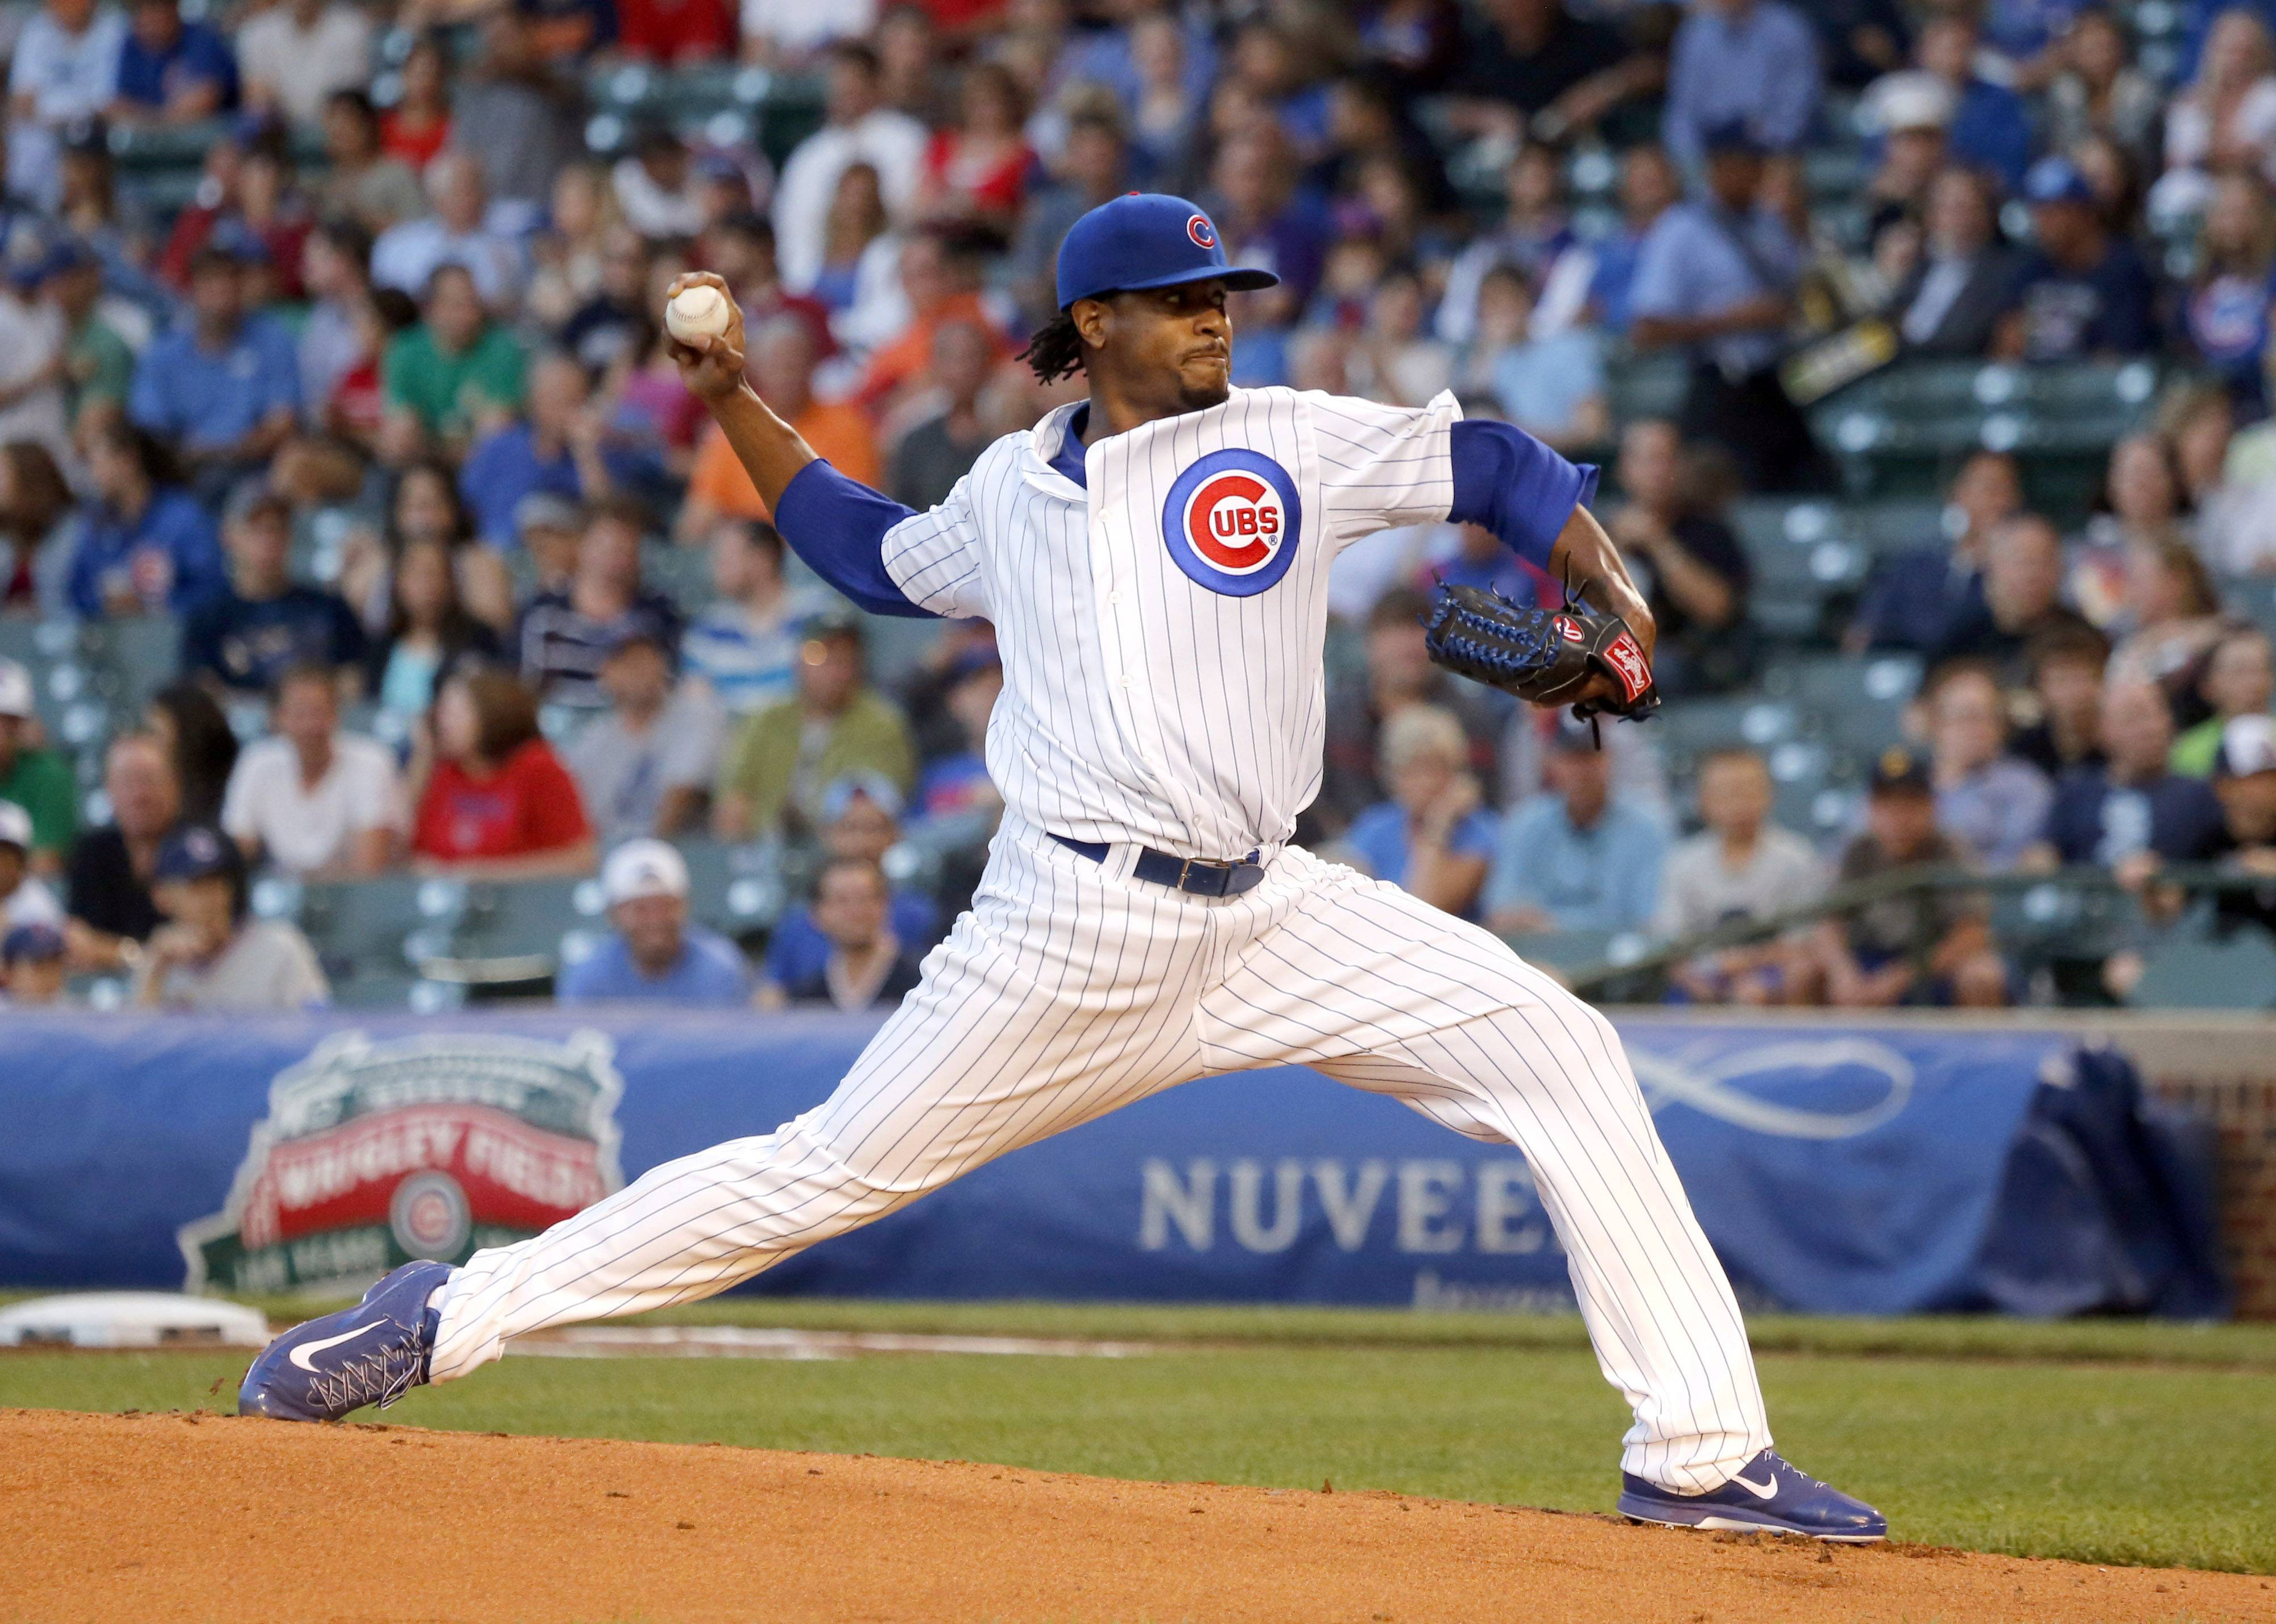 Cubs starting pitcher Edwin Jackson made it through just 4 innings Tuesday night against the Rockies.